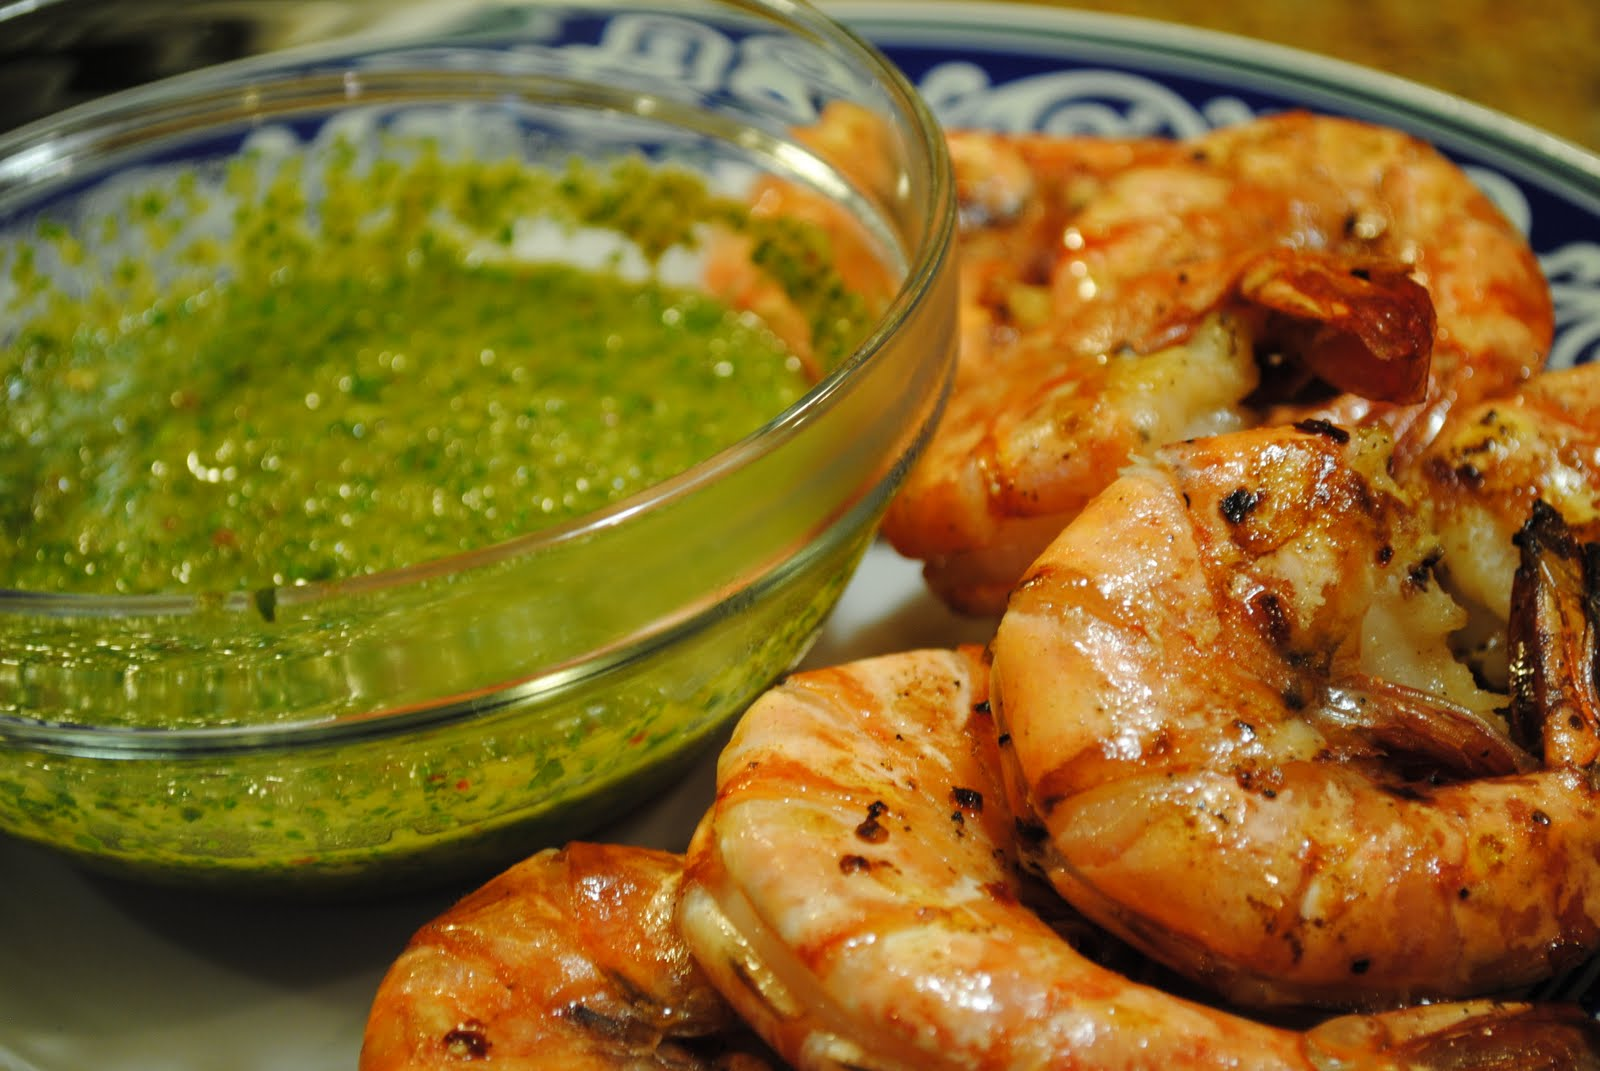 viva argentina grilled spicy prawns with chimichurri